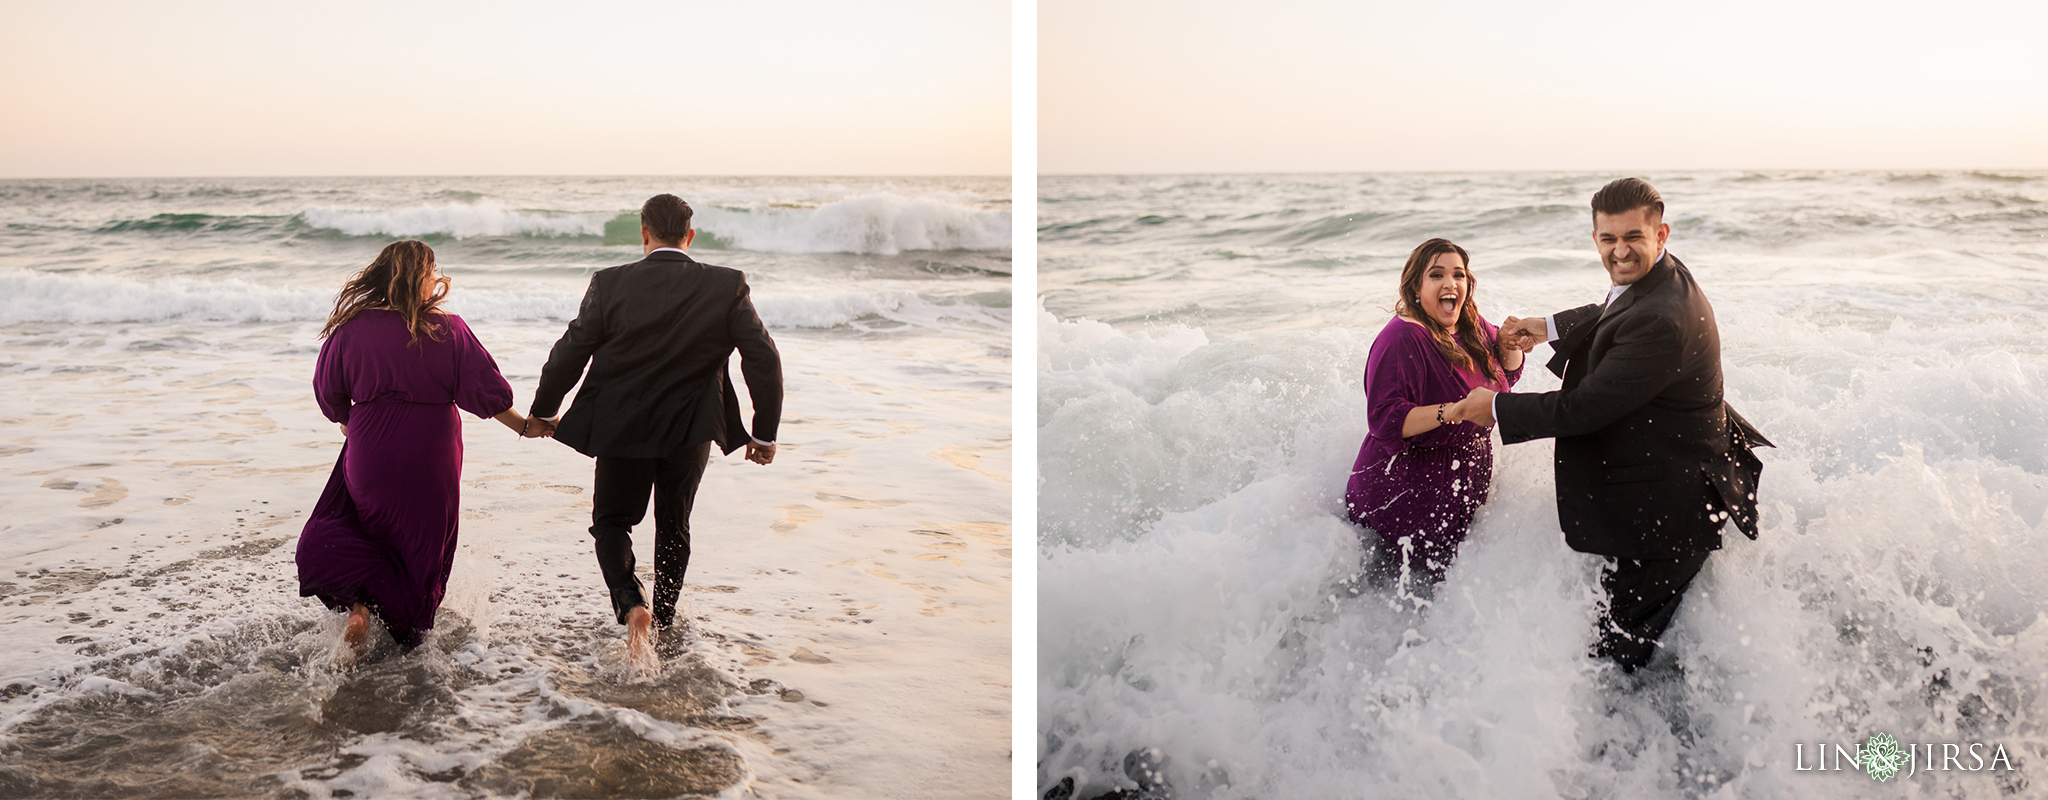 10 Victoria Beach Orange County Engagement Photography 3